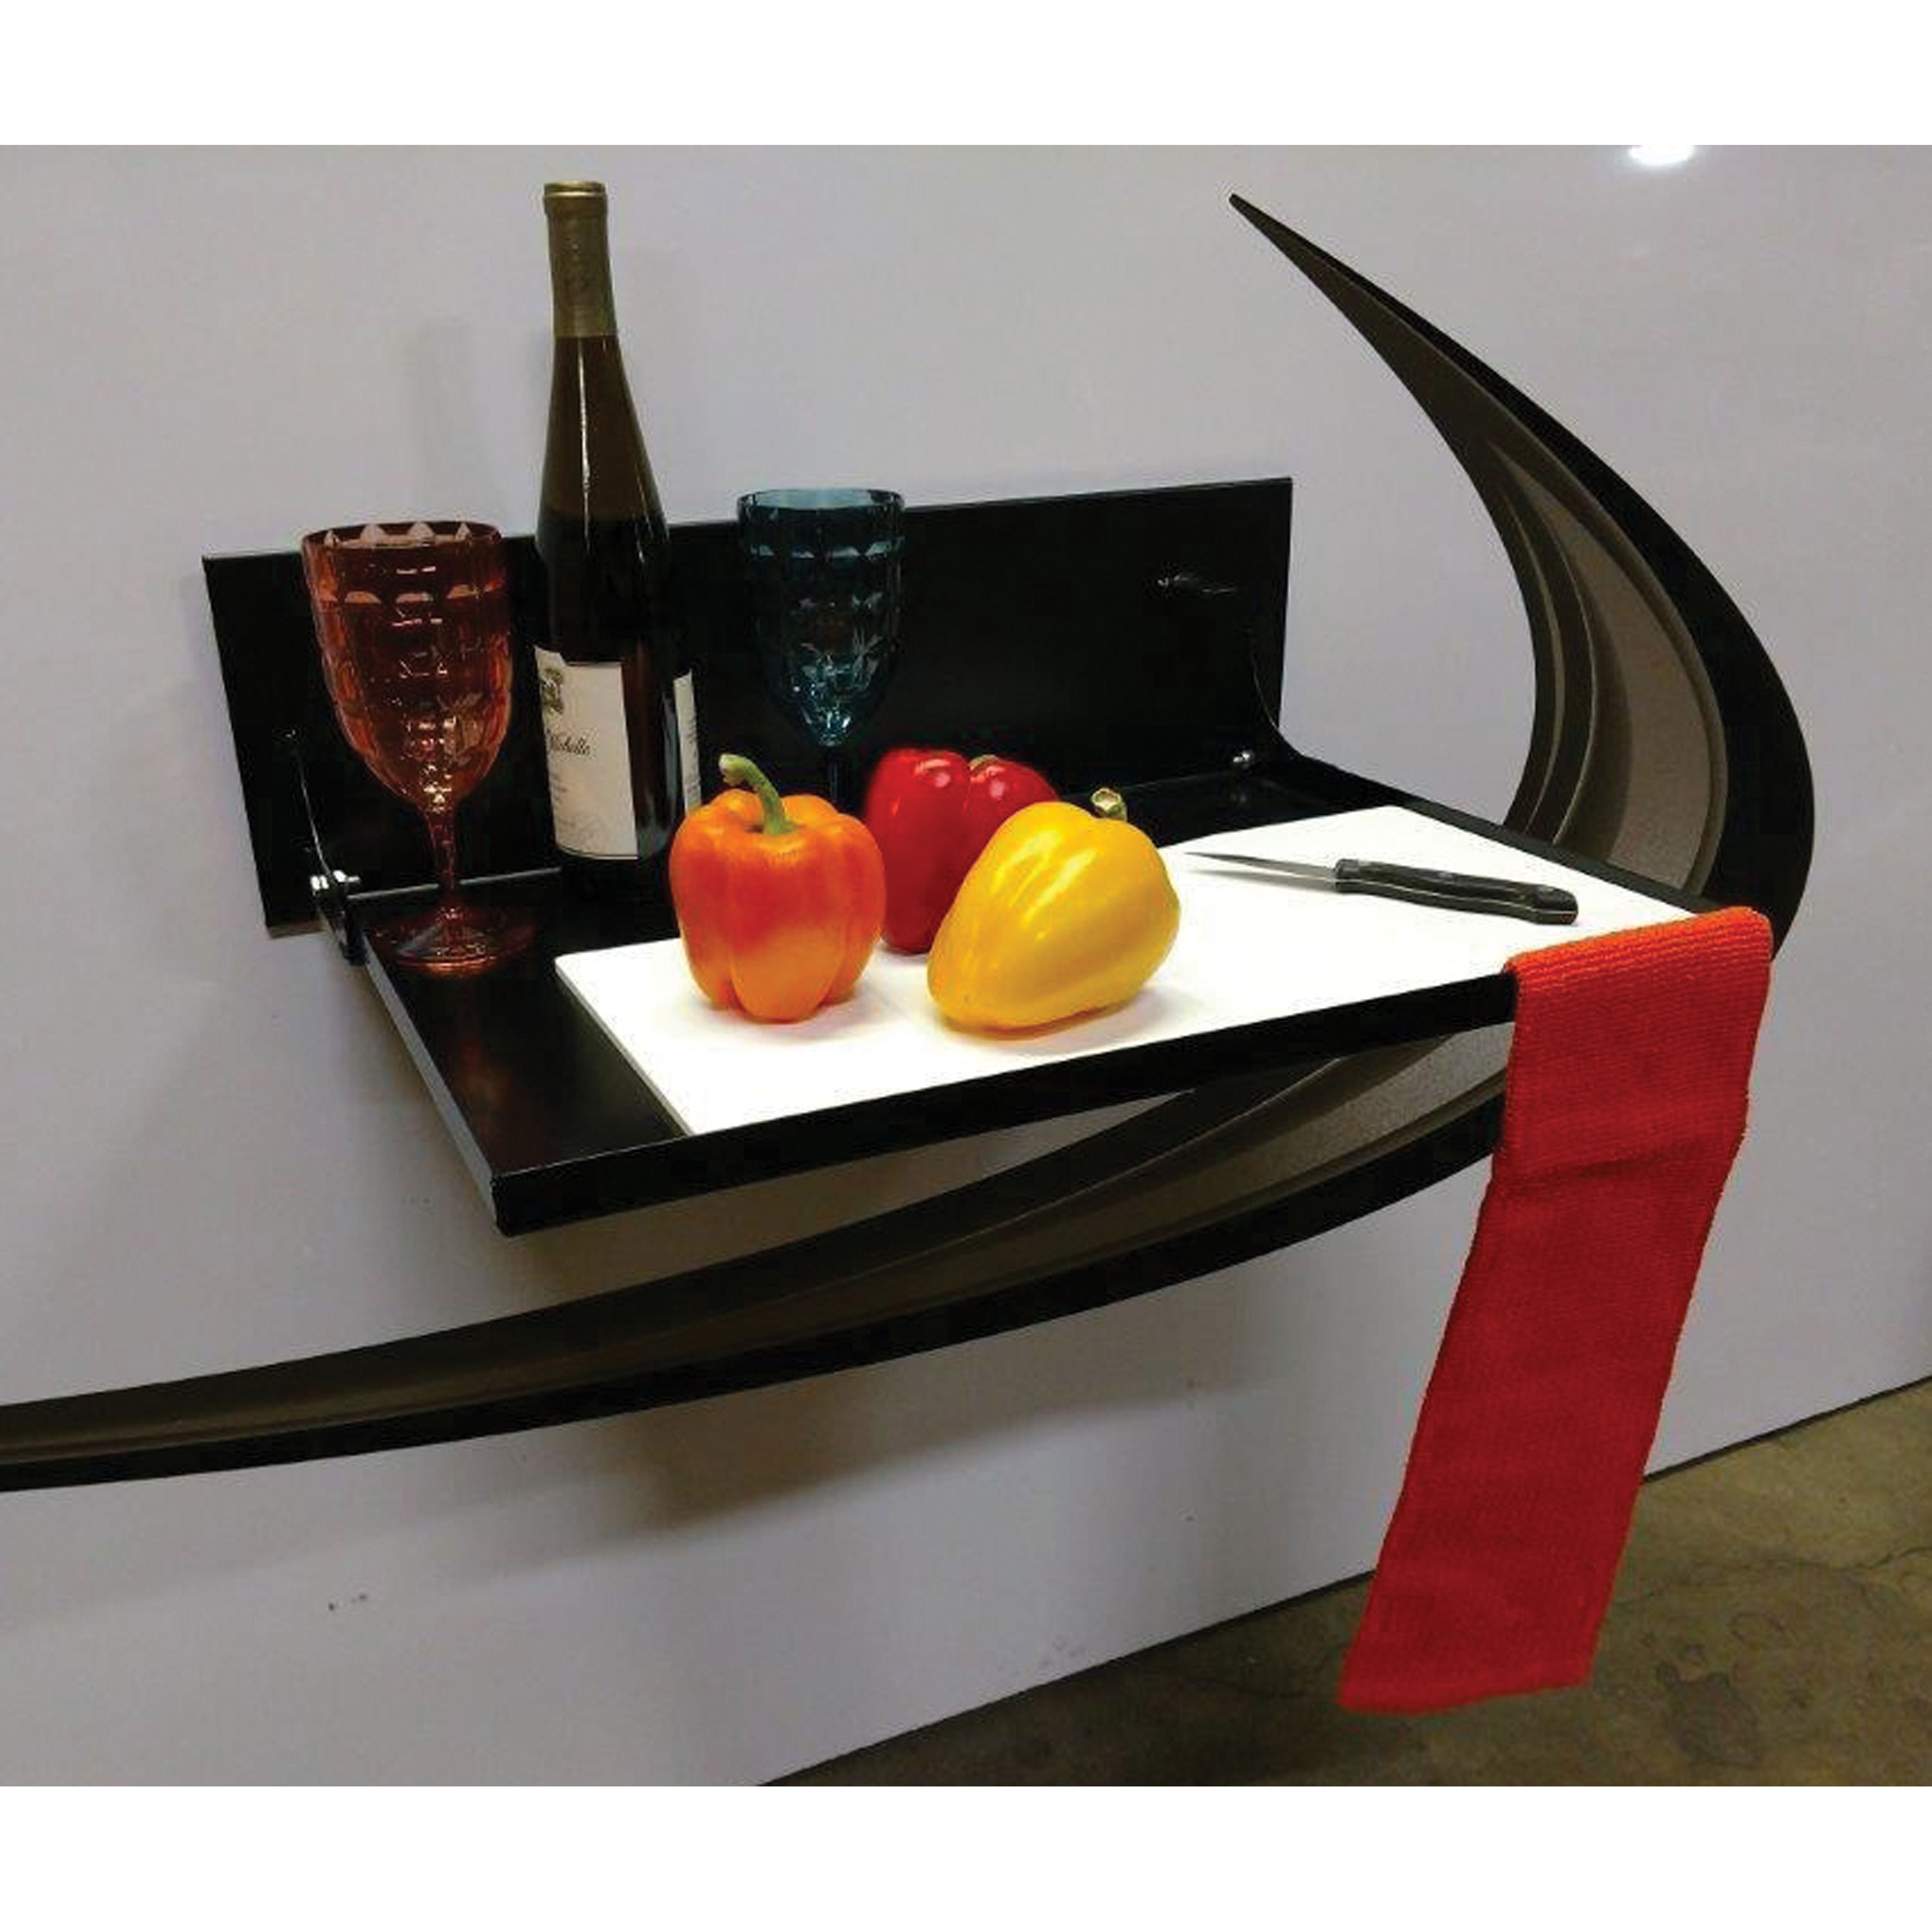 Outdoors Unlimited 52609 RV Universal Folding Table by Outdoors Unlimited